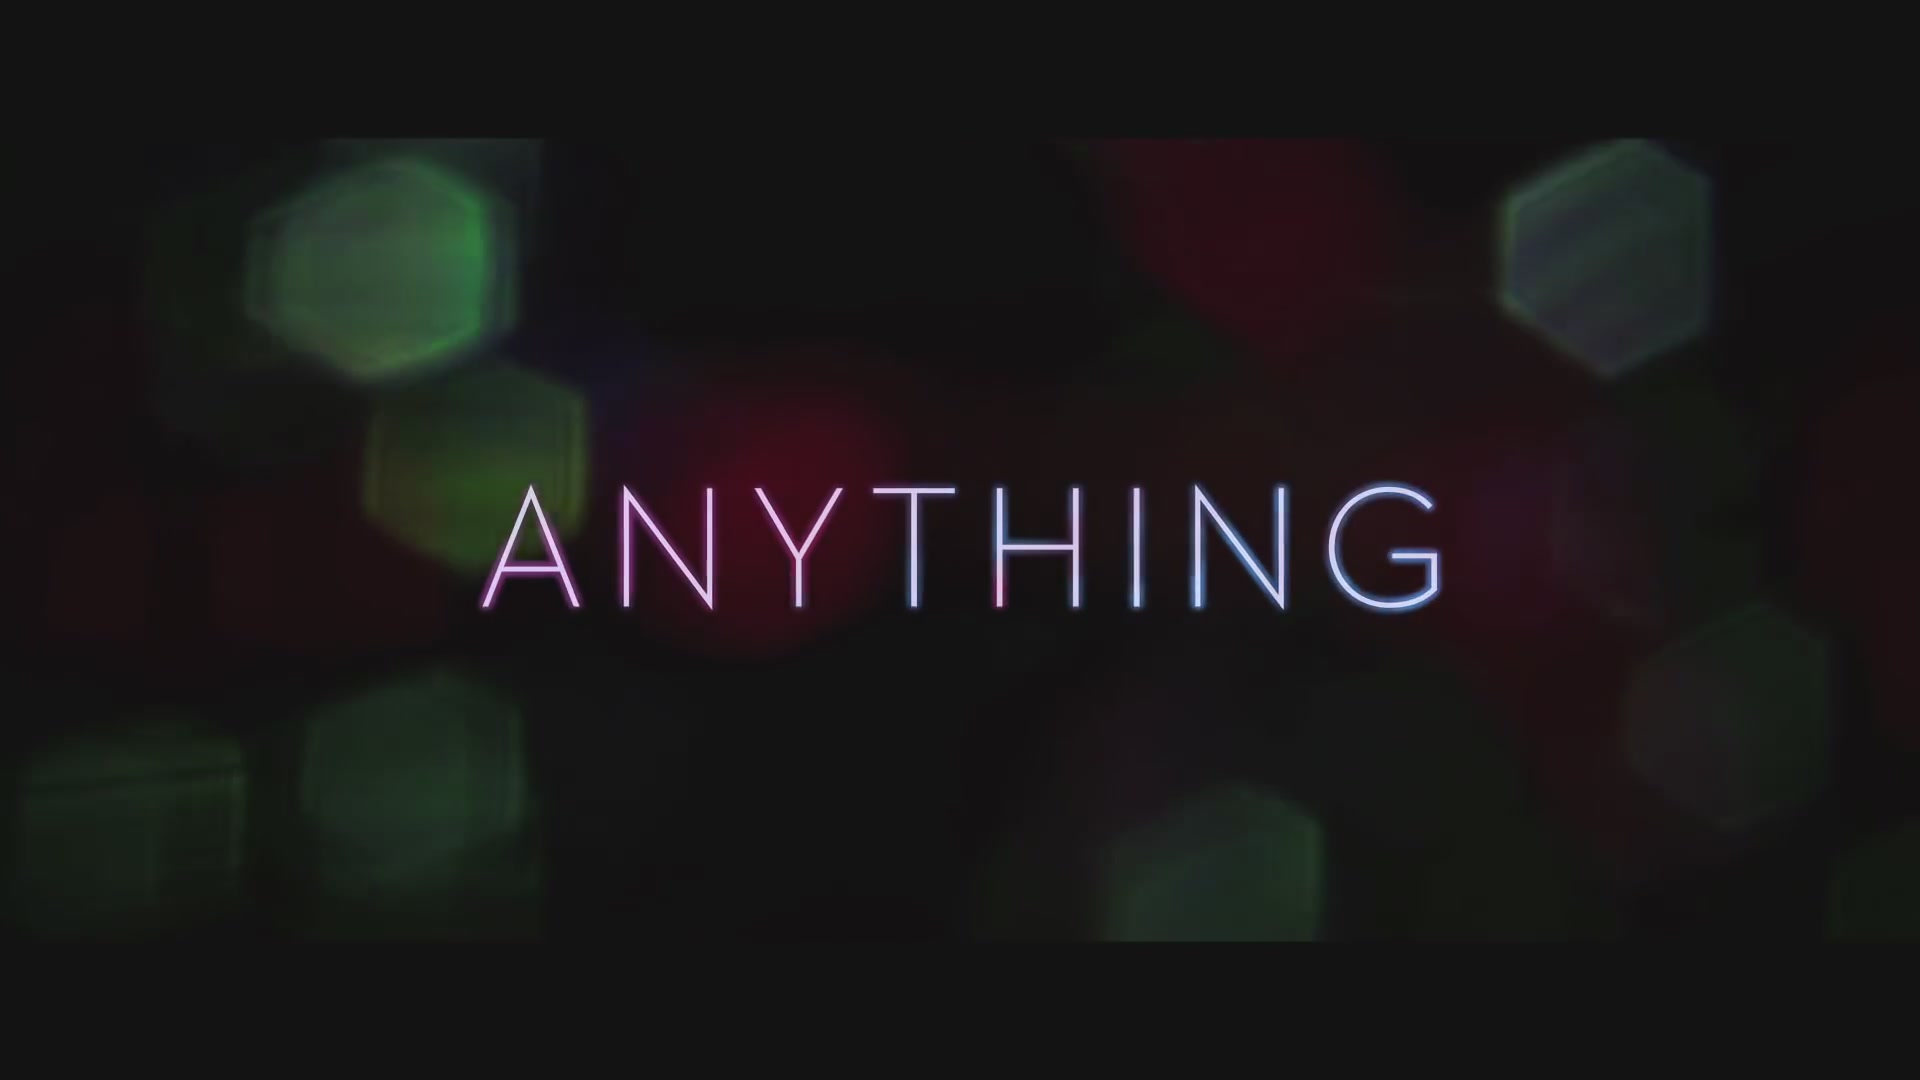 (Watch) 'Anything' trailer